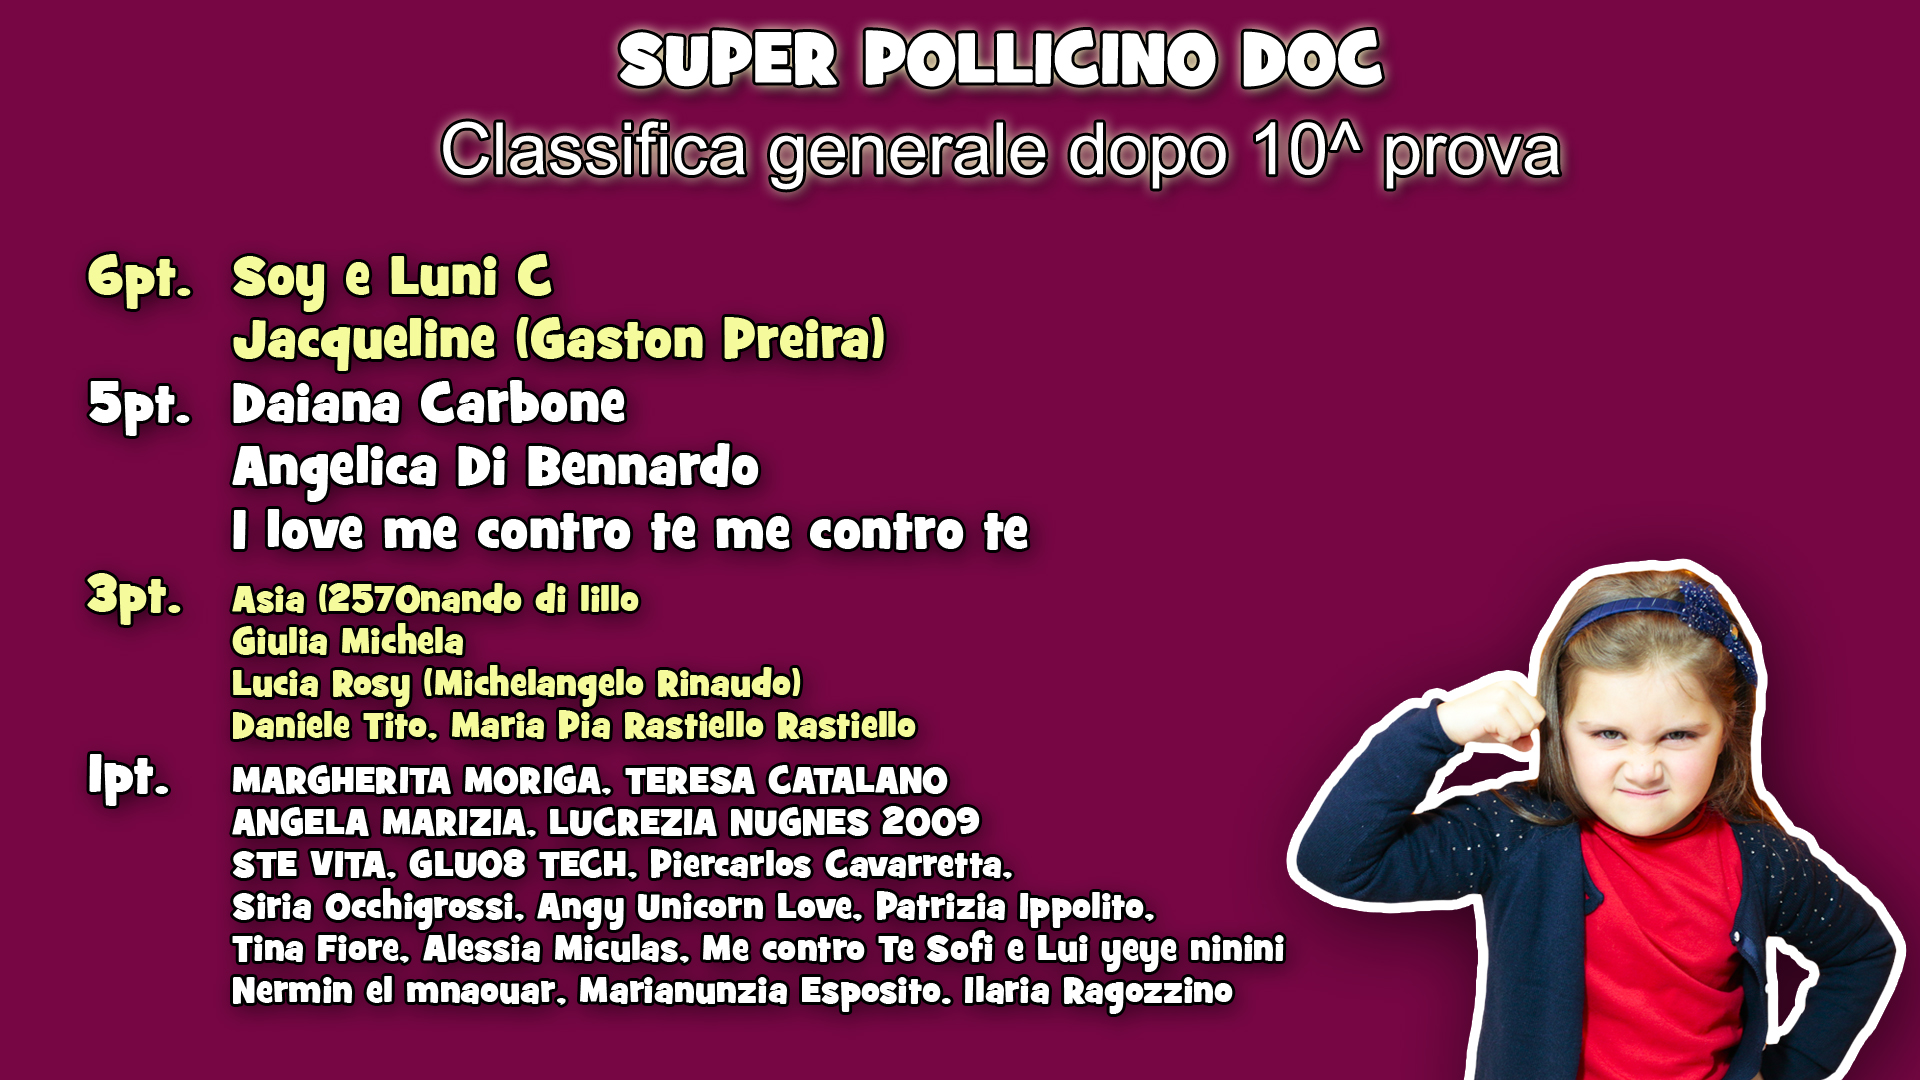 Classifica generale super pollicino doc